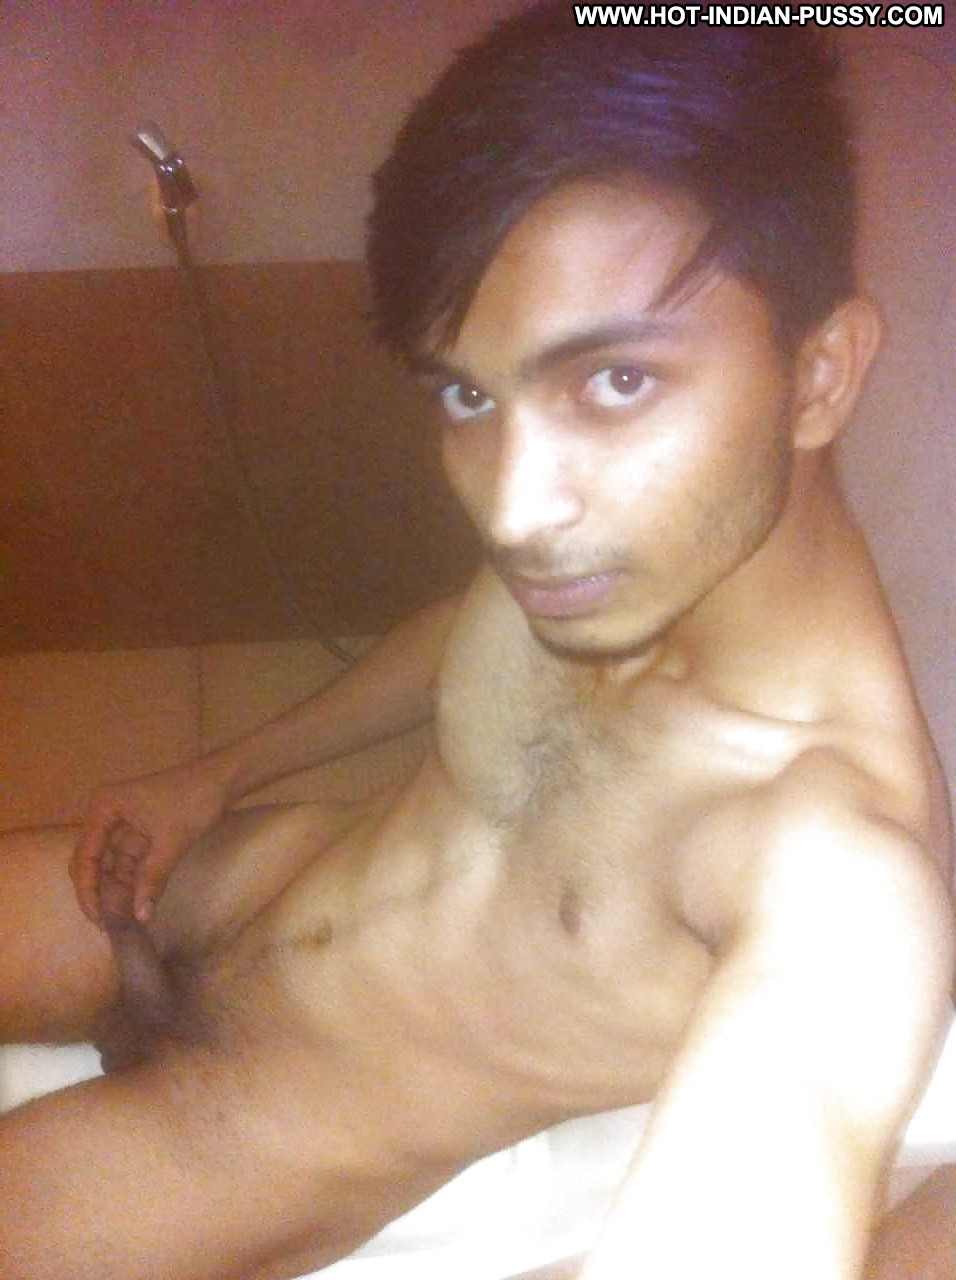 Gay sex bollywood hot hero naked man but